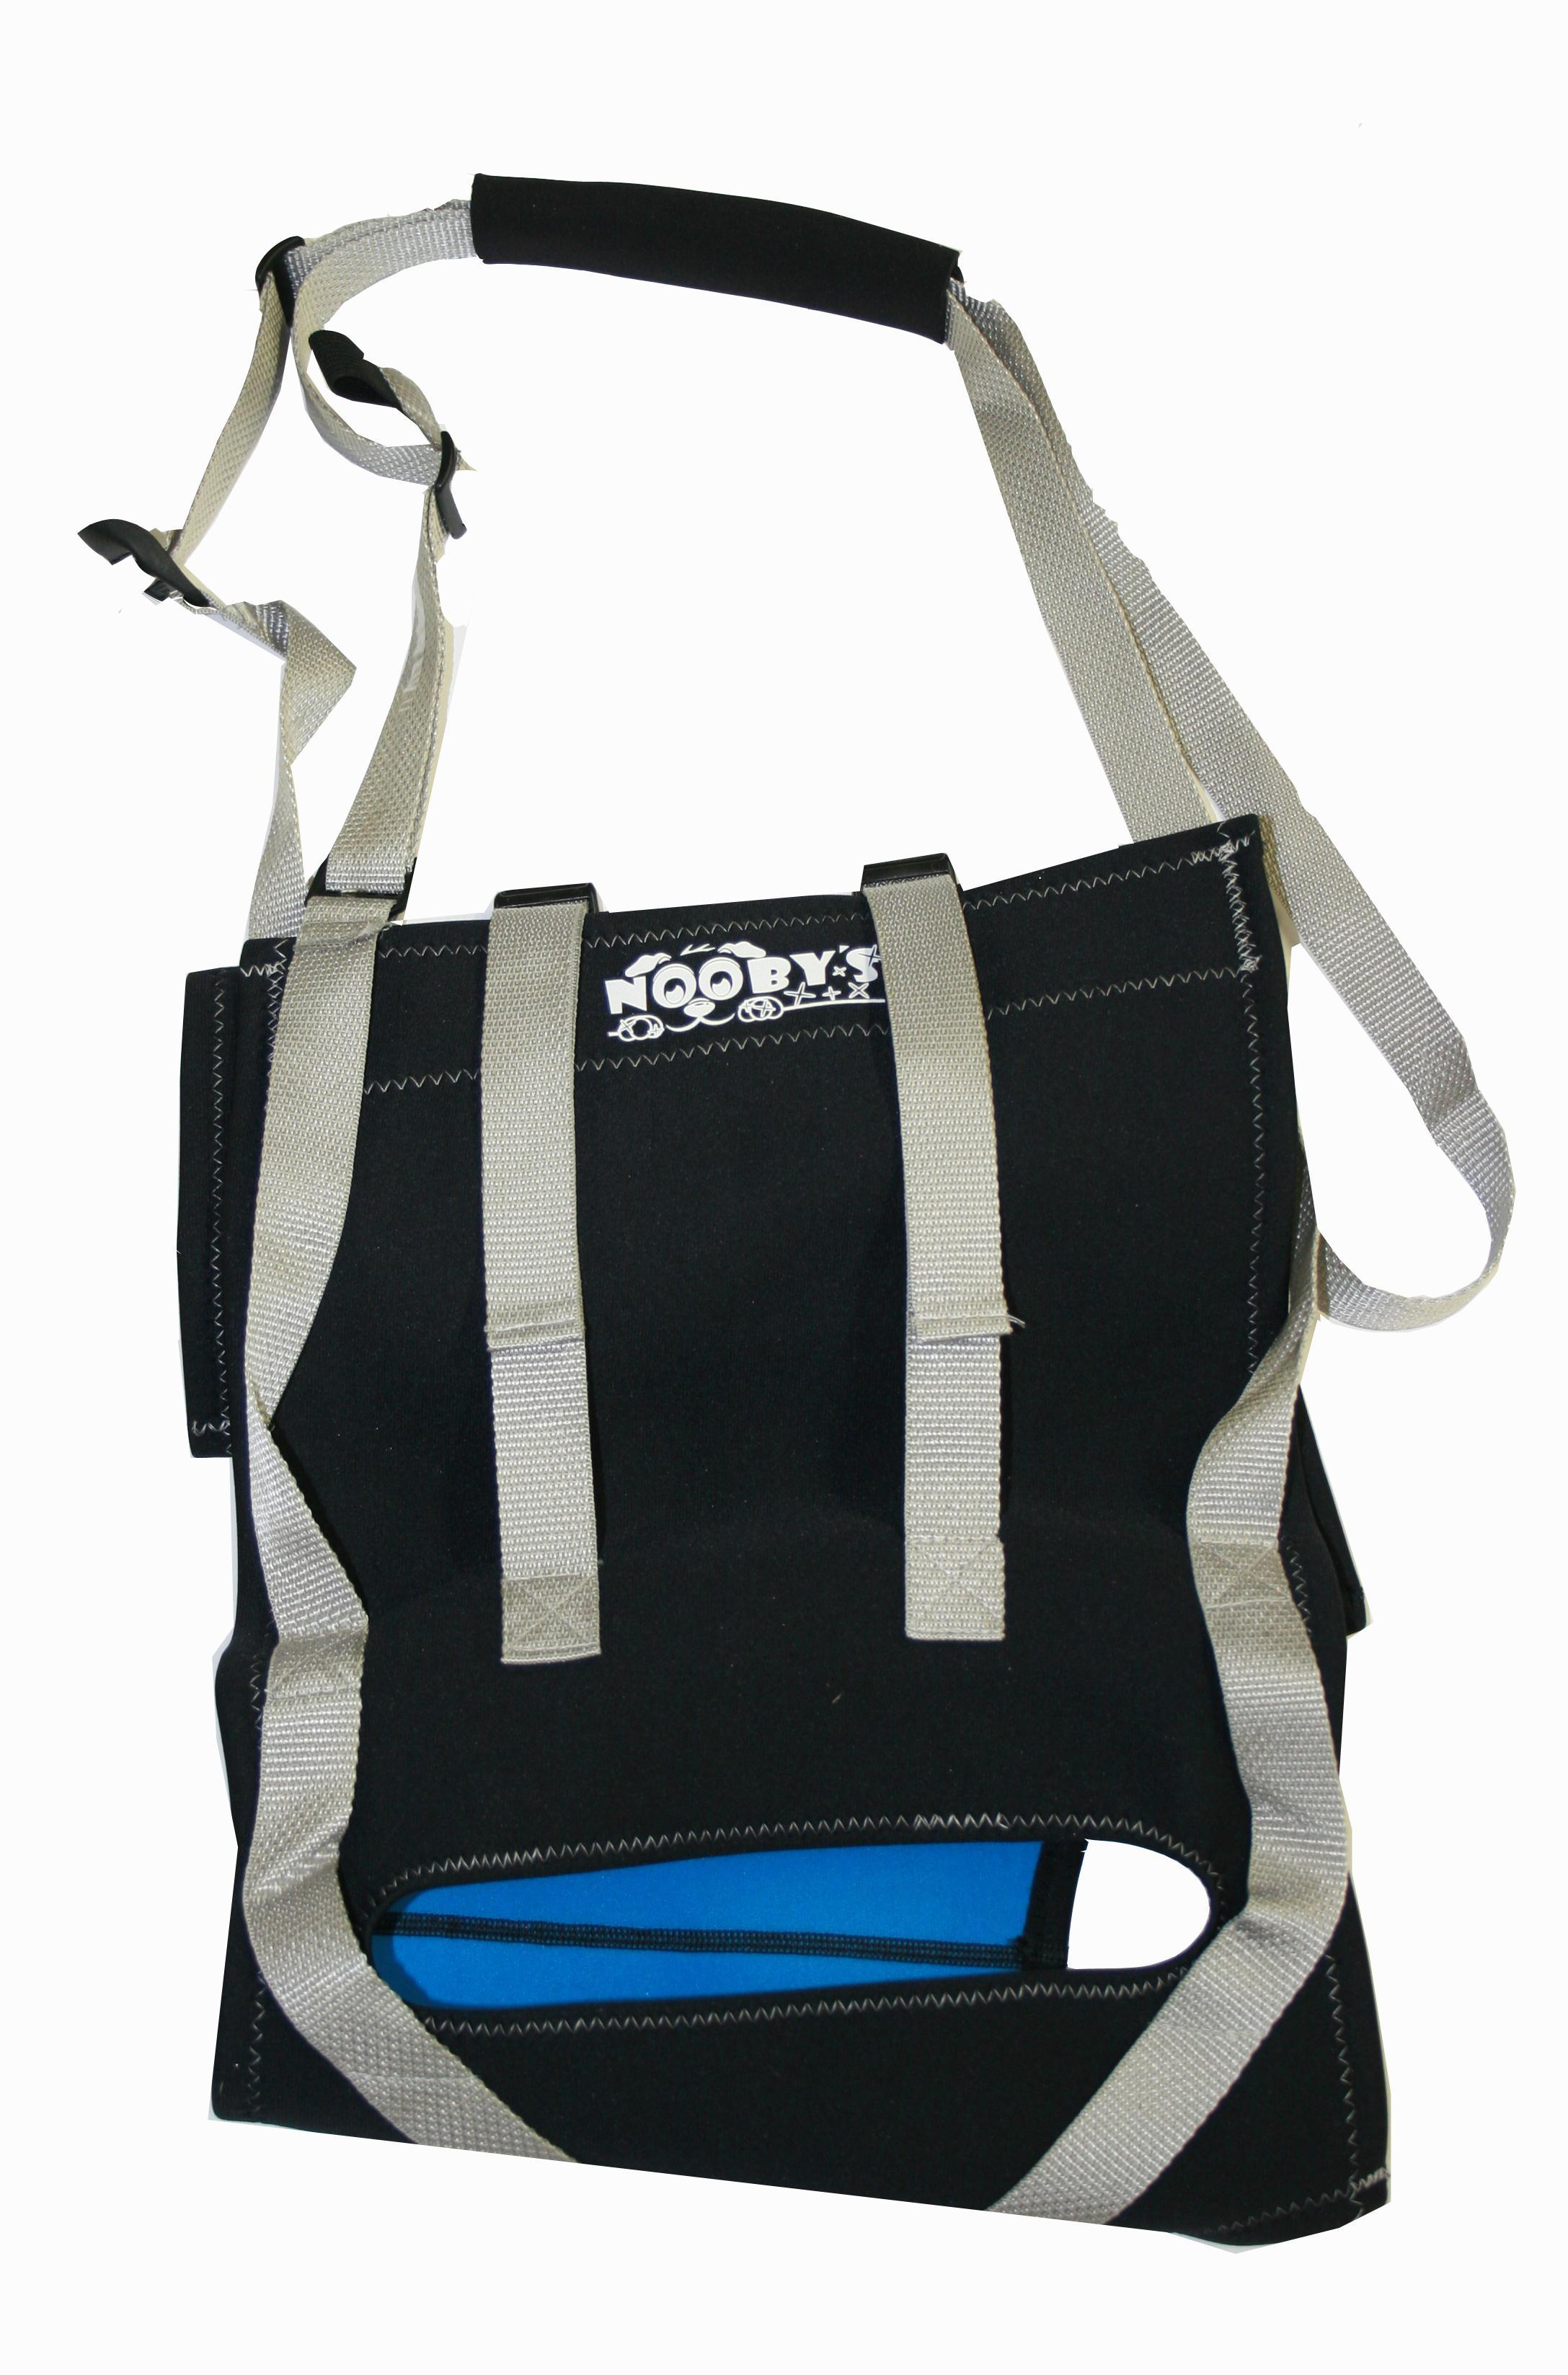 Nooby's FRONT Mobility Support Harness